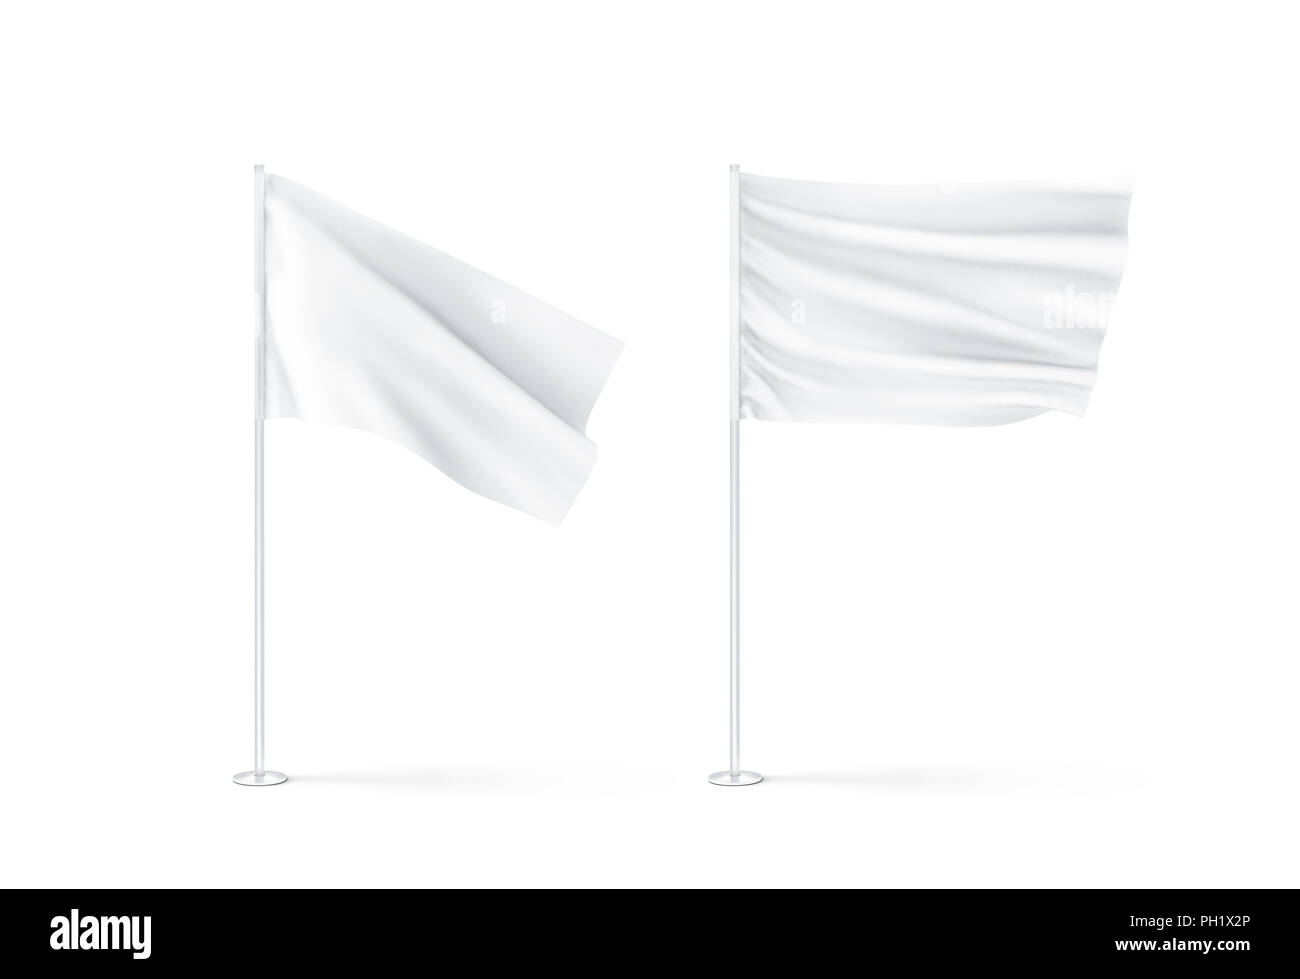 Blank white waving flags mockup, 3d rendnering. Clear rippled flagpole design mock up. Pole with banner on wind. Business branding cloth pennon. Clean - Stock Image